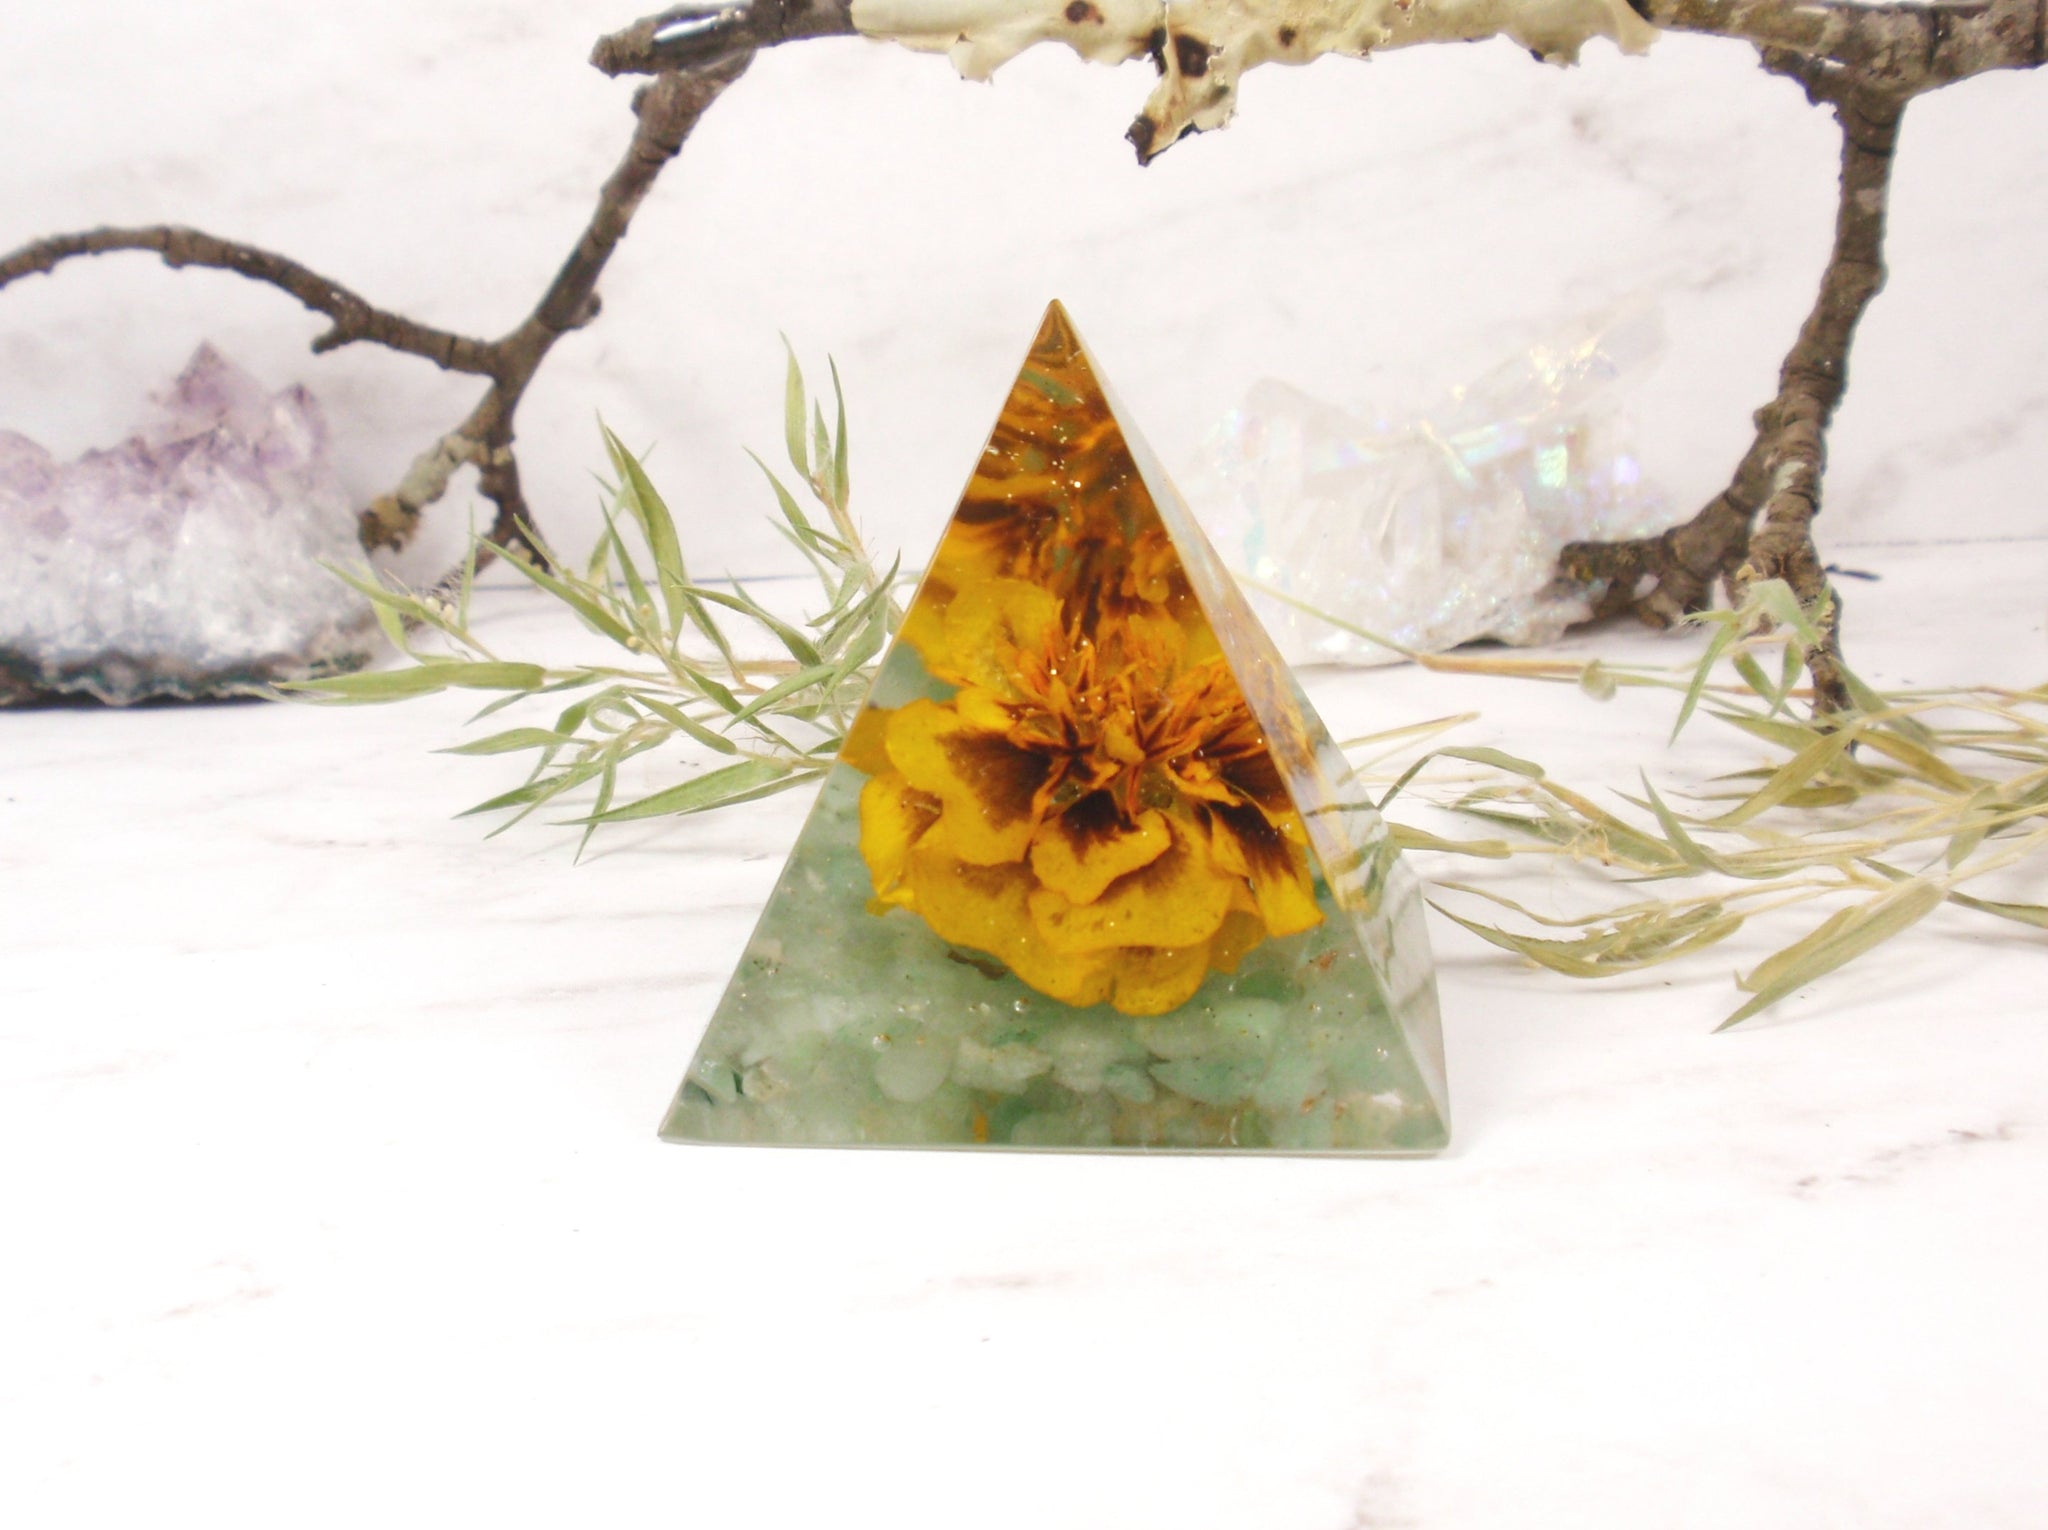 Resin pyramid real flowers Green aventurine house decor, spiritual gift, Paperweight